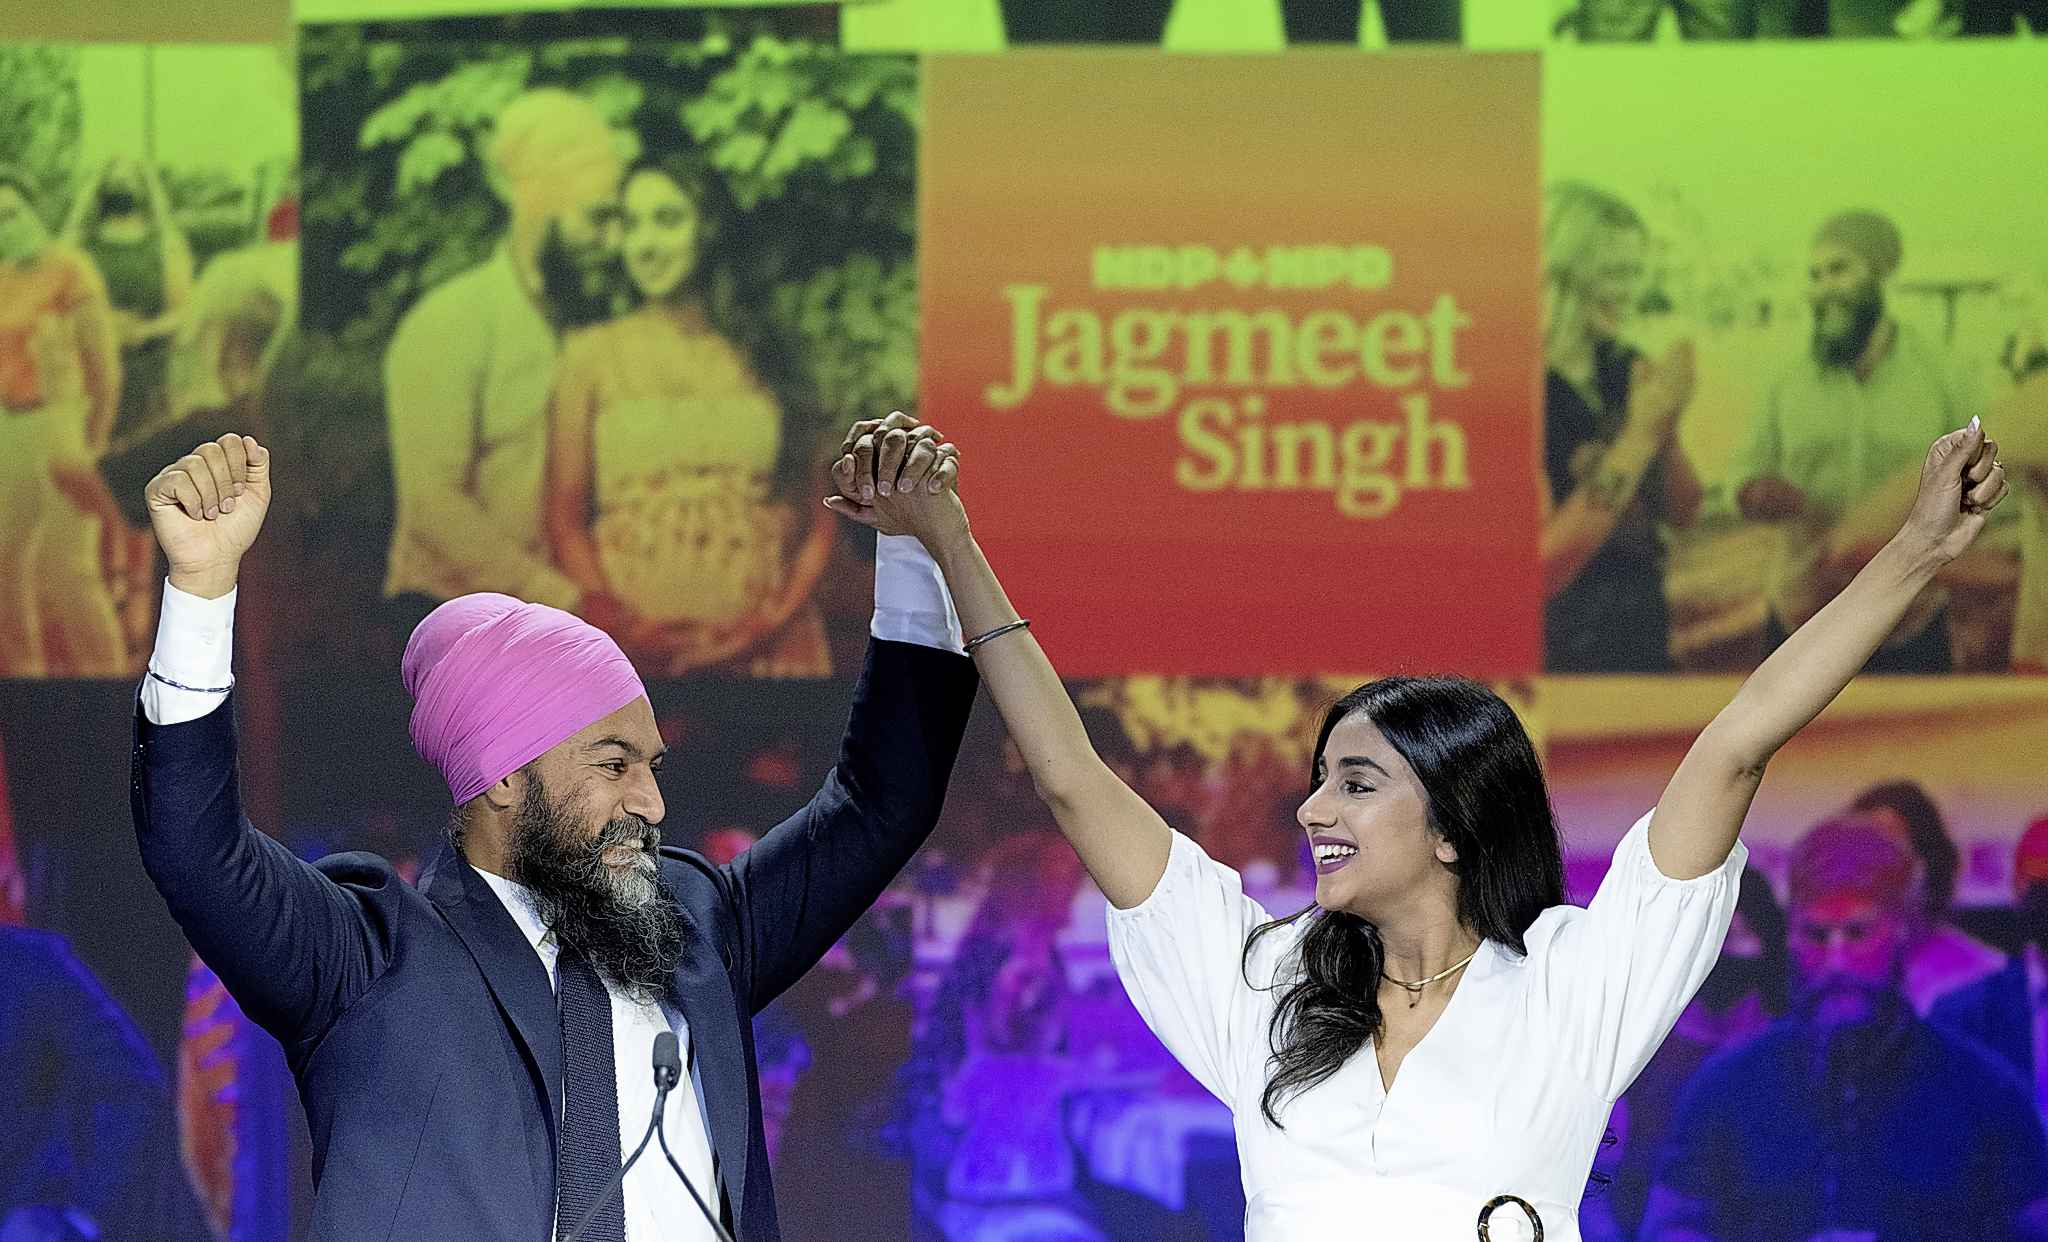 NDP Leader Jagmeet Singh and his wife Gurkiran Kaur Sidhu arrive on stage to deliver his concession speech at his election night headquarters during the Canadian federal election in Vancouver, Monday, September 20, 2021. THE CANADIAN PRESS/Jonathan Hayward